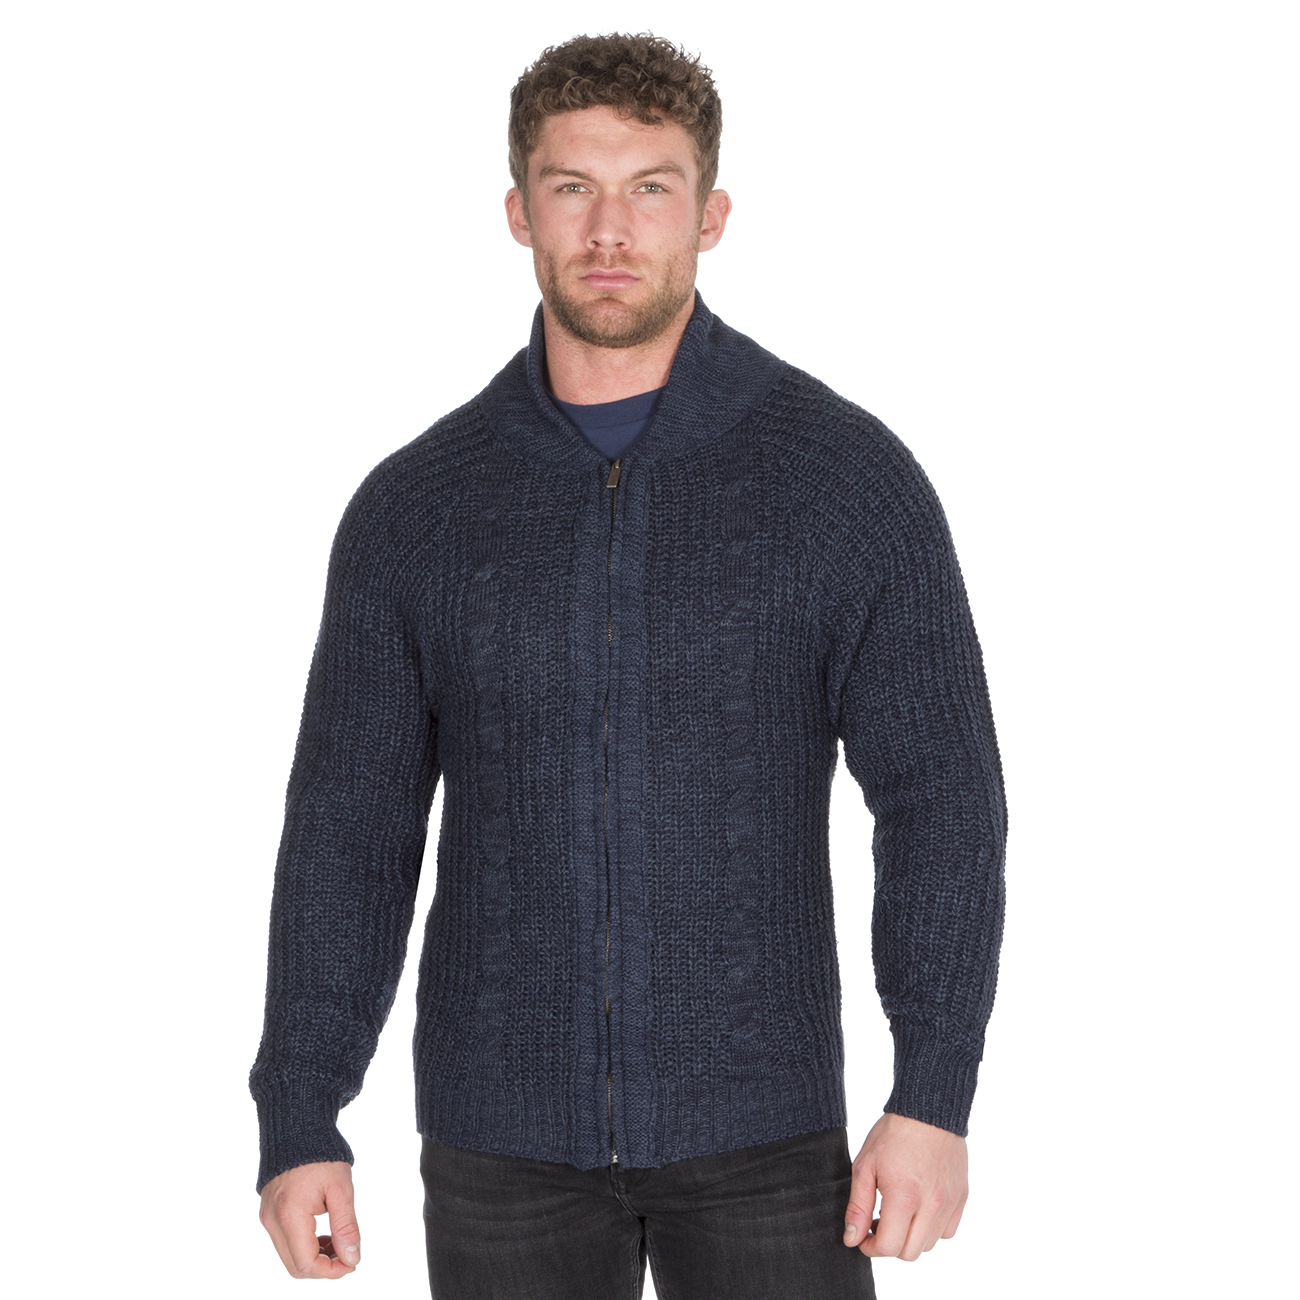 Homme-Zip-Cardigan-Gris-Bleu-marine-Full-Zip-Up-Stand-collier-cable-tricot-pull-UK miniature 6